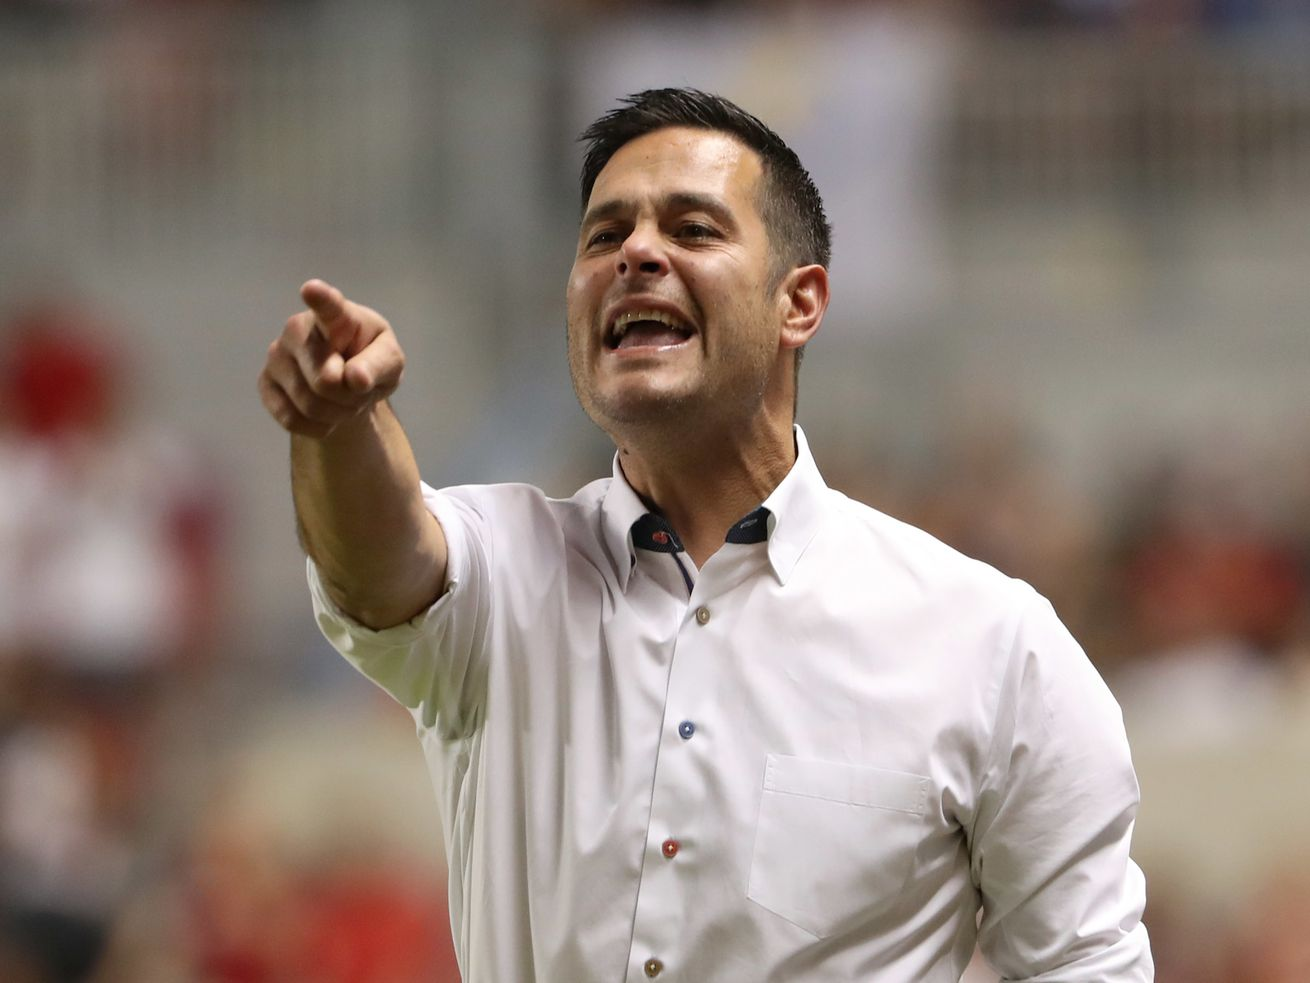 Former RSL coach Mike Petke files lawsuit against club, owner